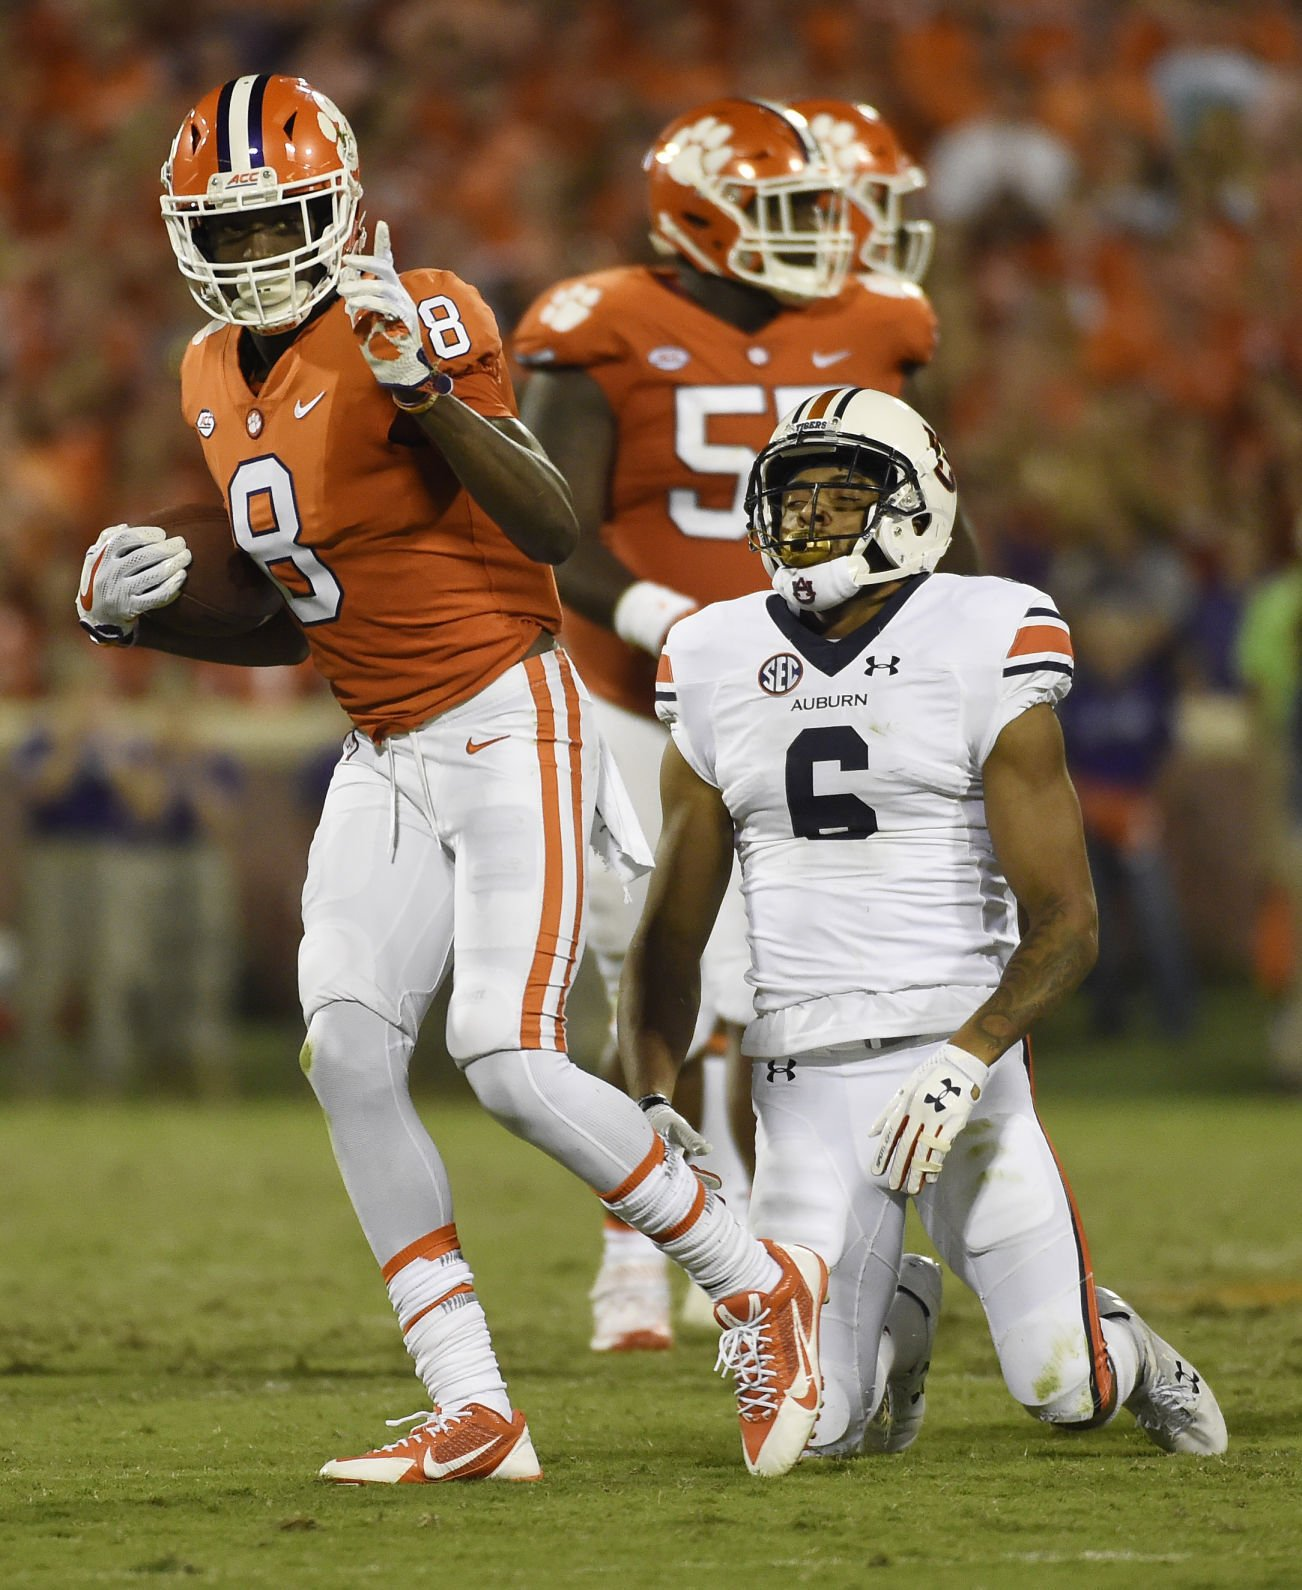 Clemson racks up 11 sacks in 14-6 win over Auburn